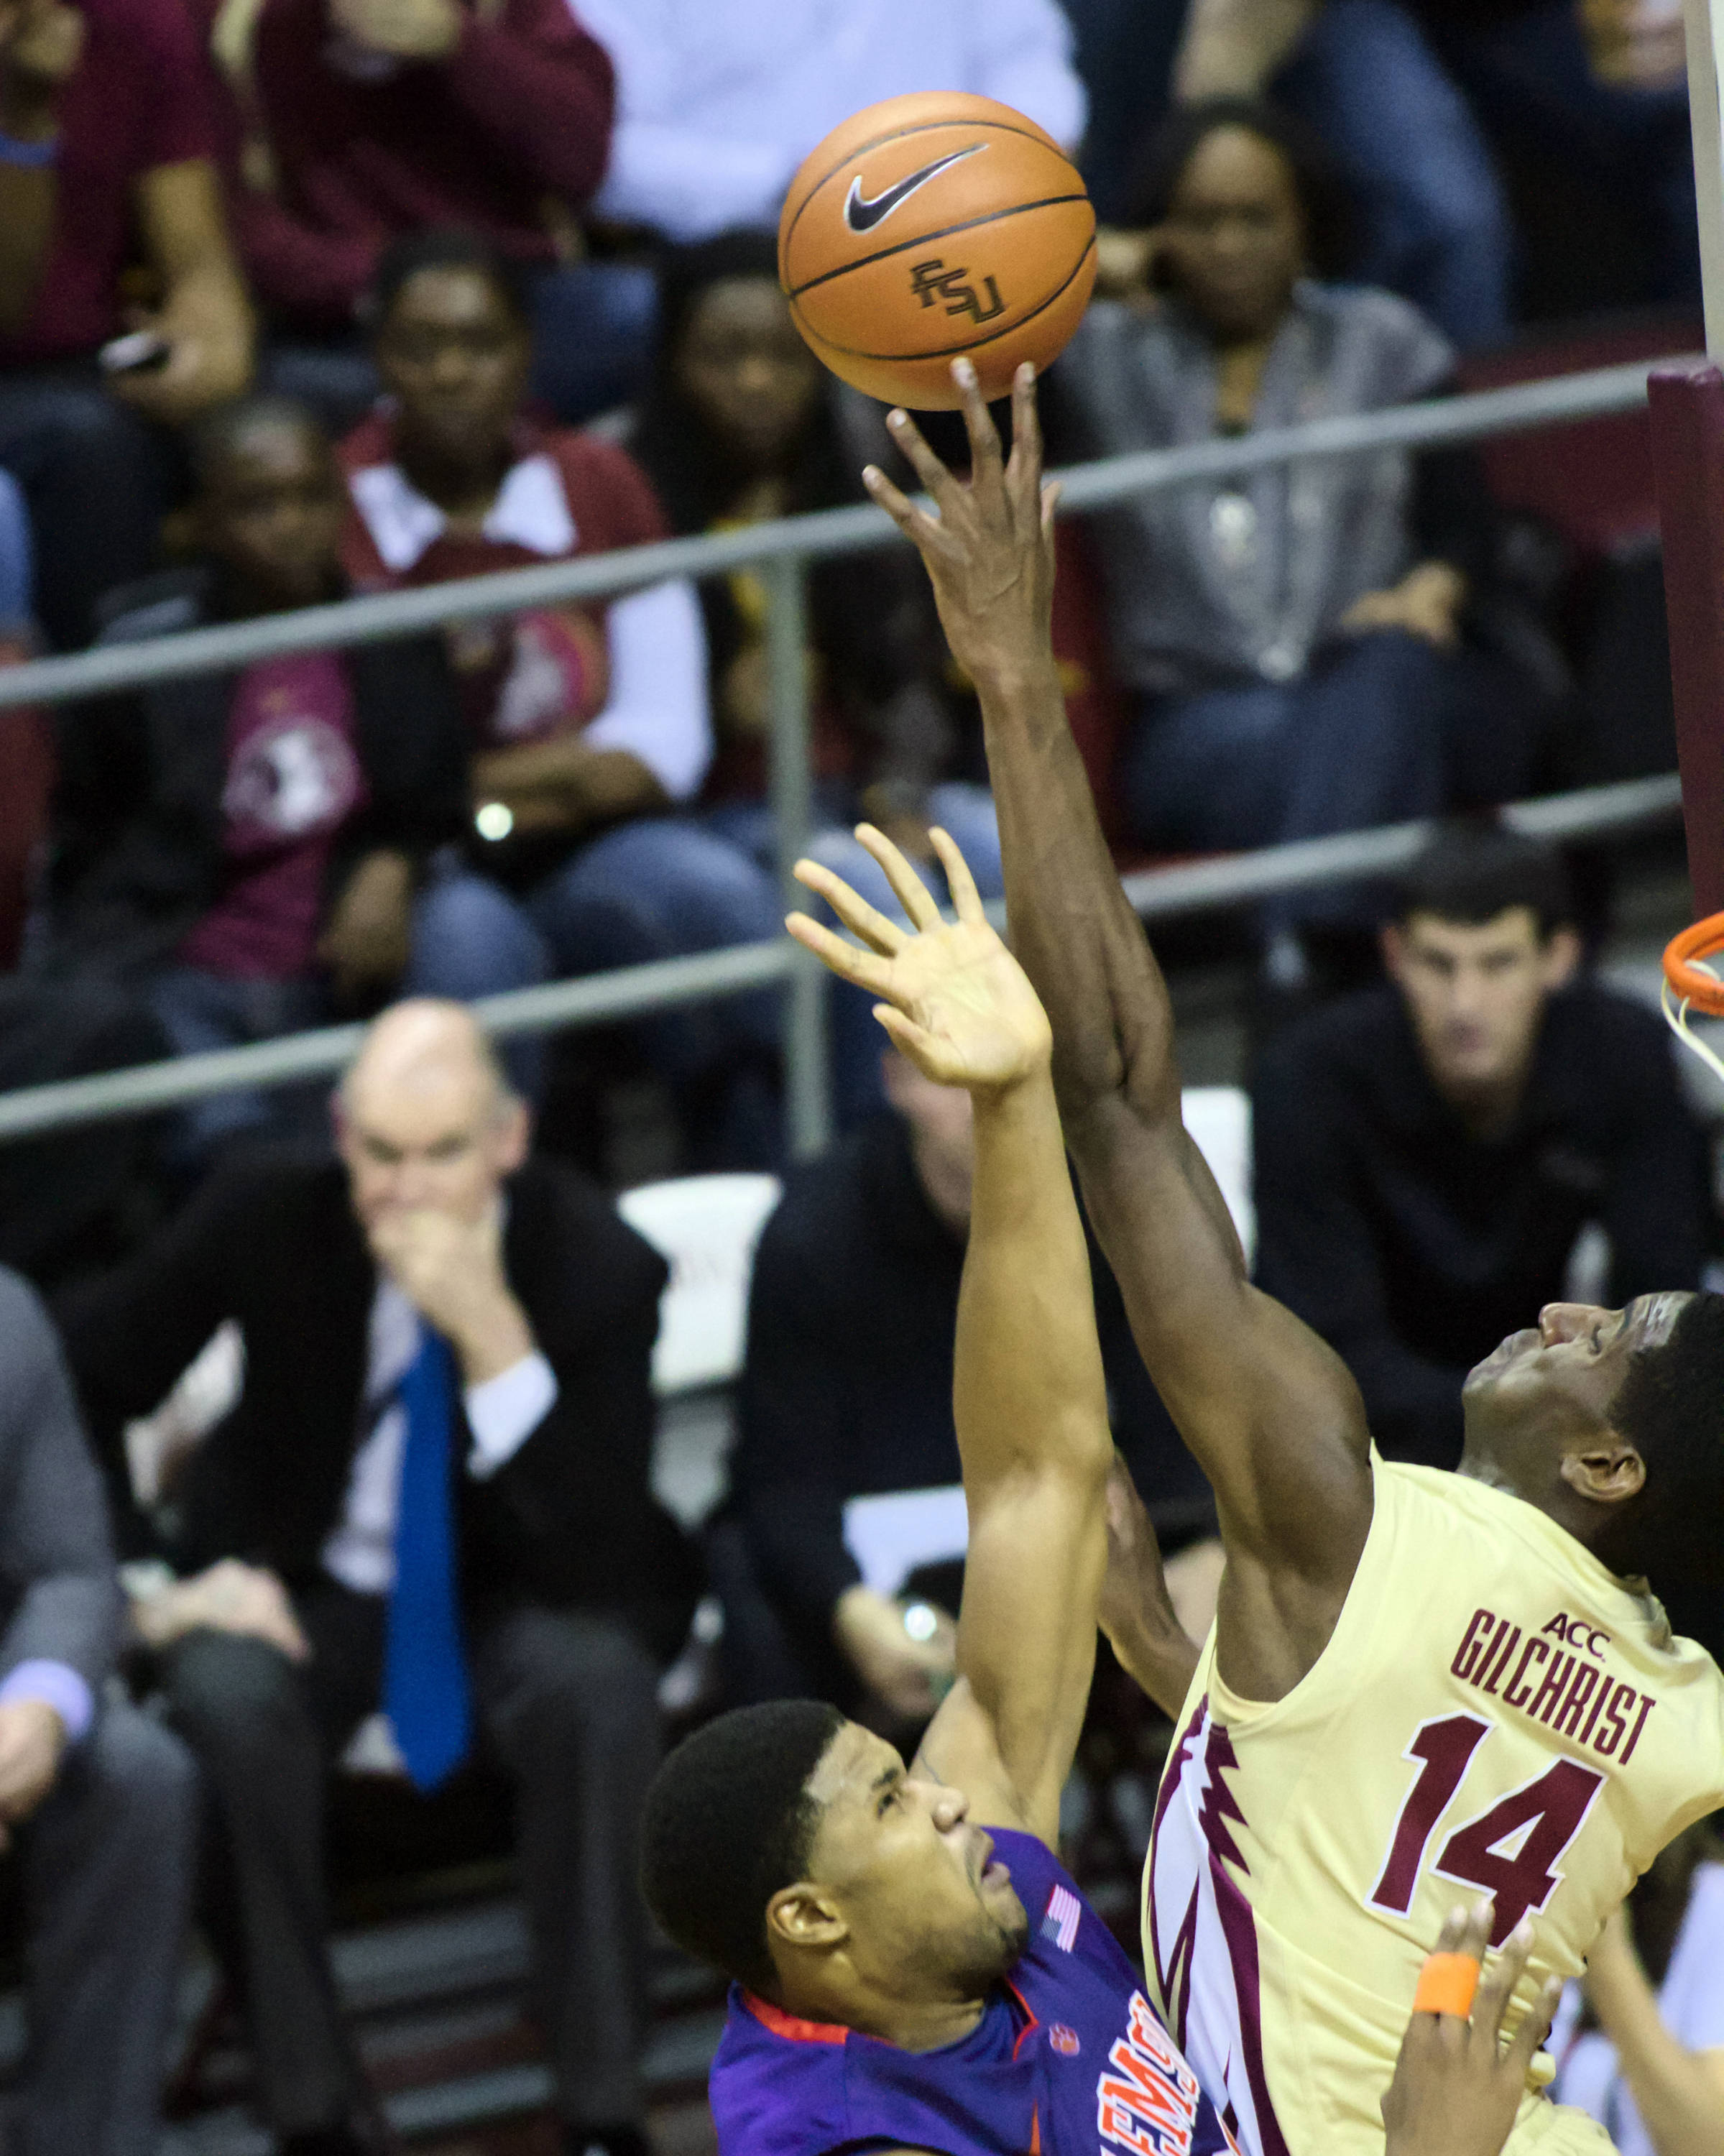 Robert Gilchrist (14) with a block, FSU vs Clemson, 01/24/13. (Photo by Steve Musco)